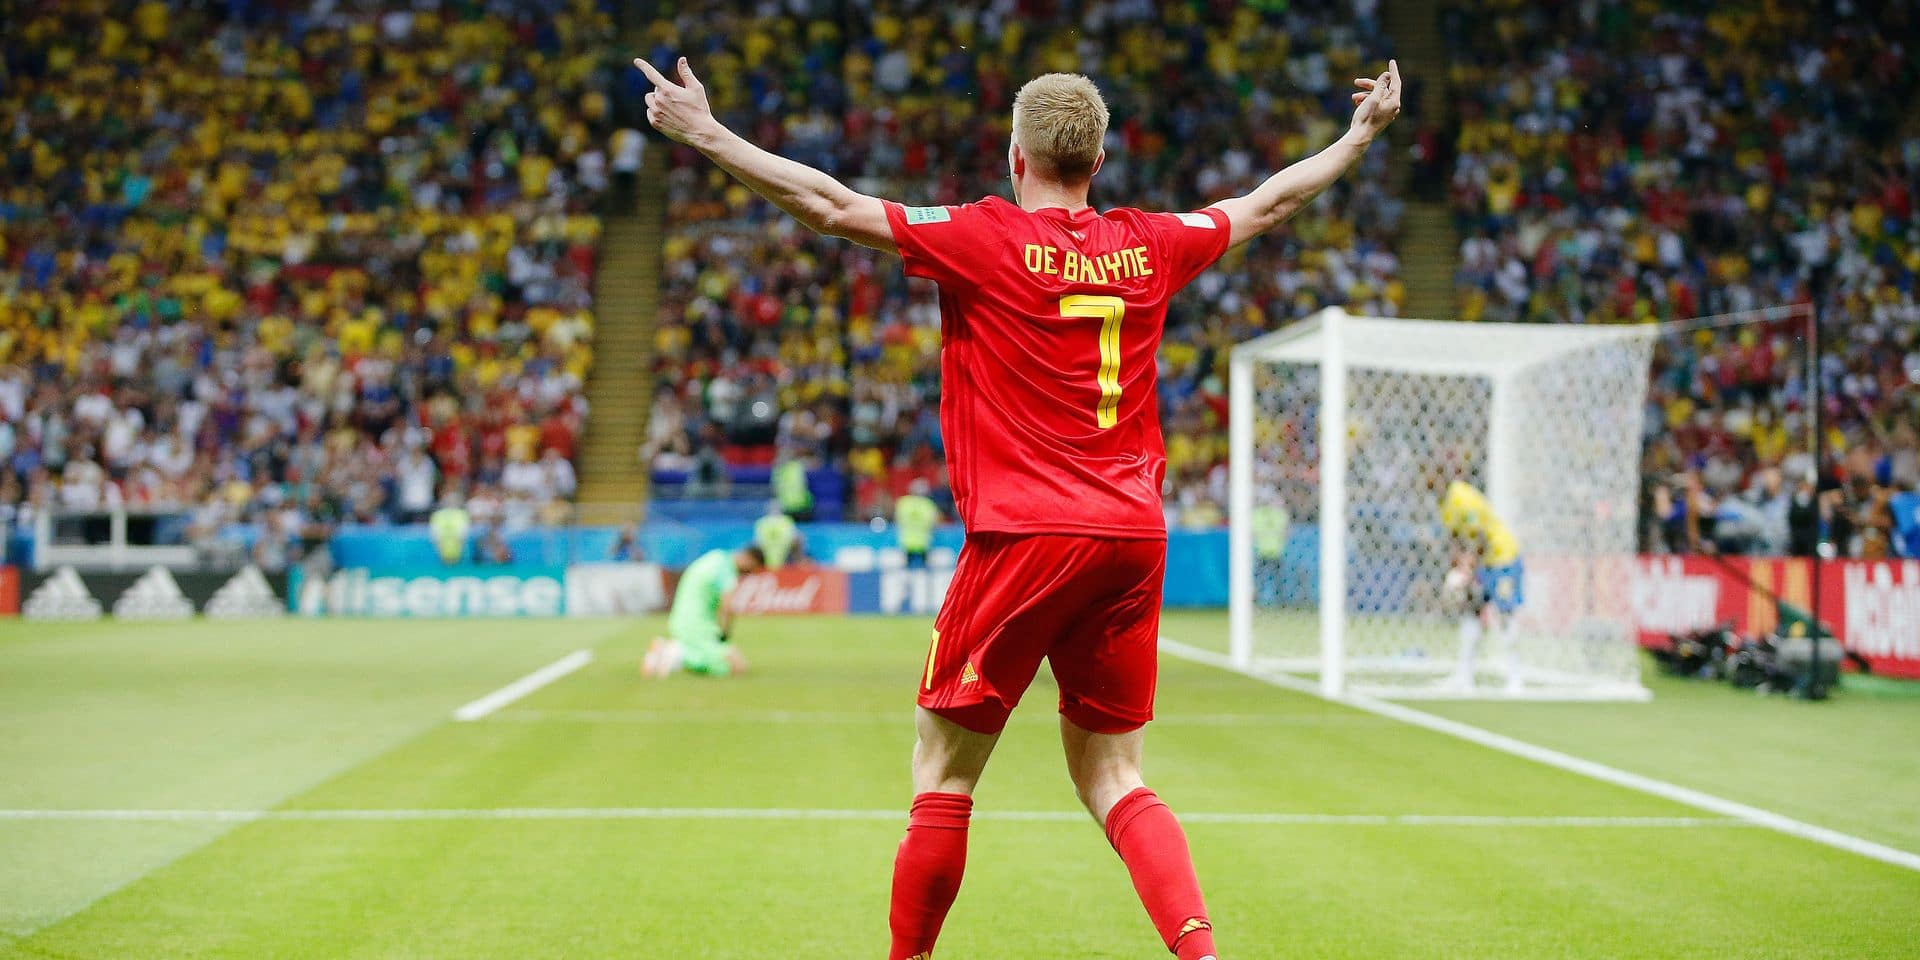 Belgium's Kevin De Bruyne celebrates after scoring during a soccer game between Belgian national soccer team the Red Devils and Brazil in Kazan, Russia, Friday 06 July 2018, the quarter-finals of the 2018 FIFA World Cup. BELGA PHOTO BRUNO FAHY